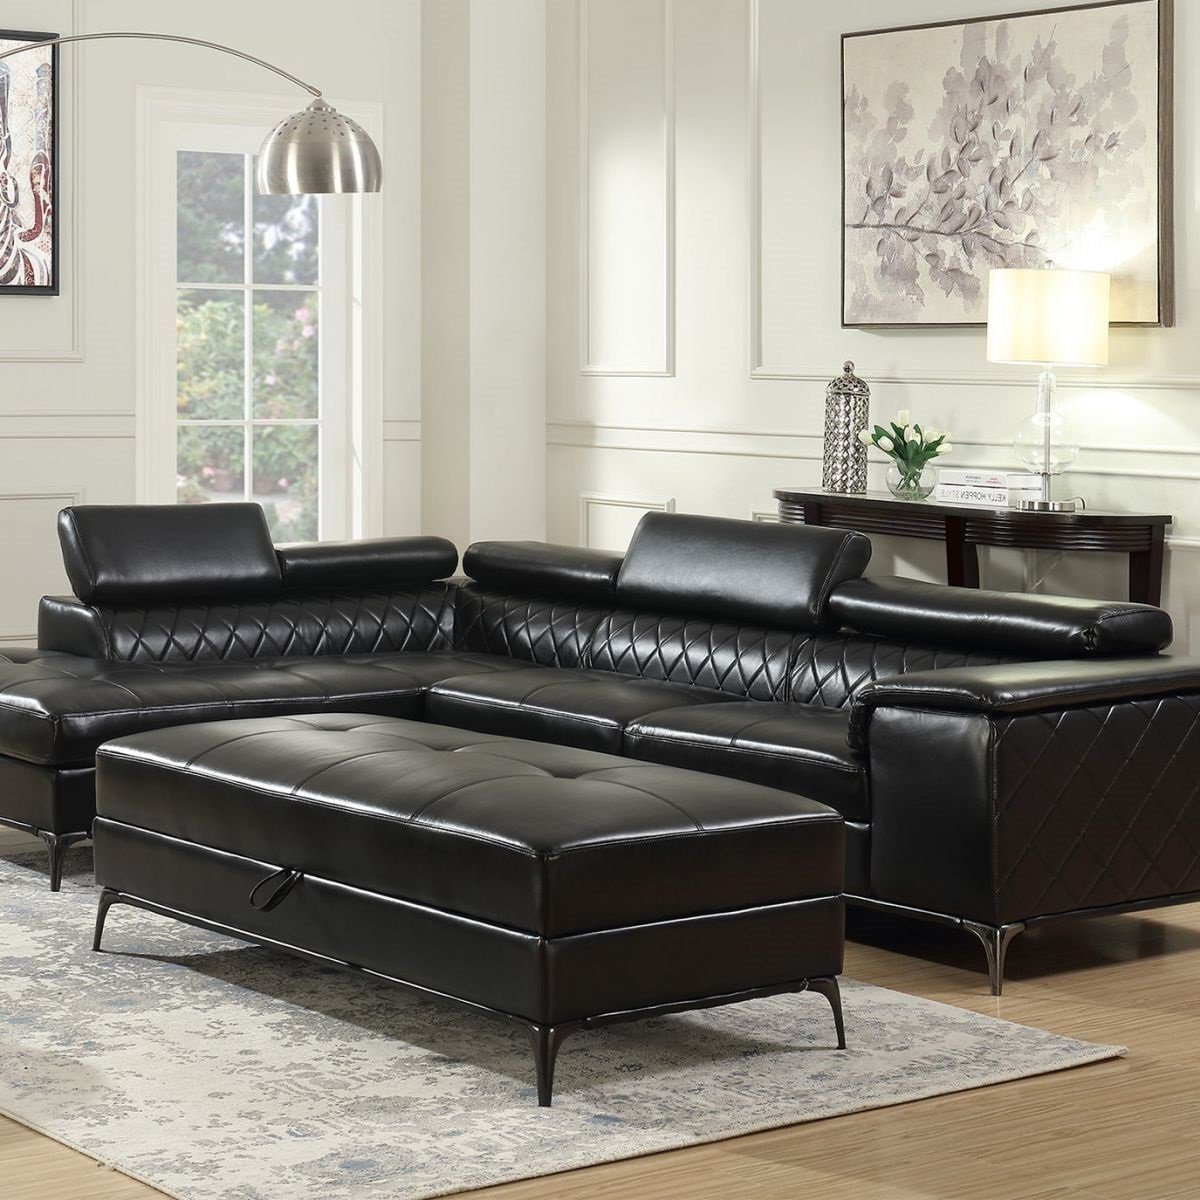 Cosmos Grey 2 Piece Sectionals With Laf Chaise In 2019 Worthington Black 2 Pc Sectional & Ottoman (View 18 of 20)